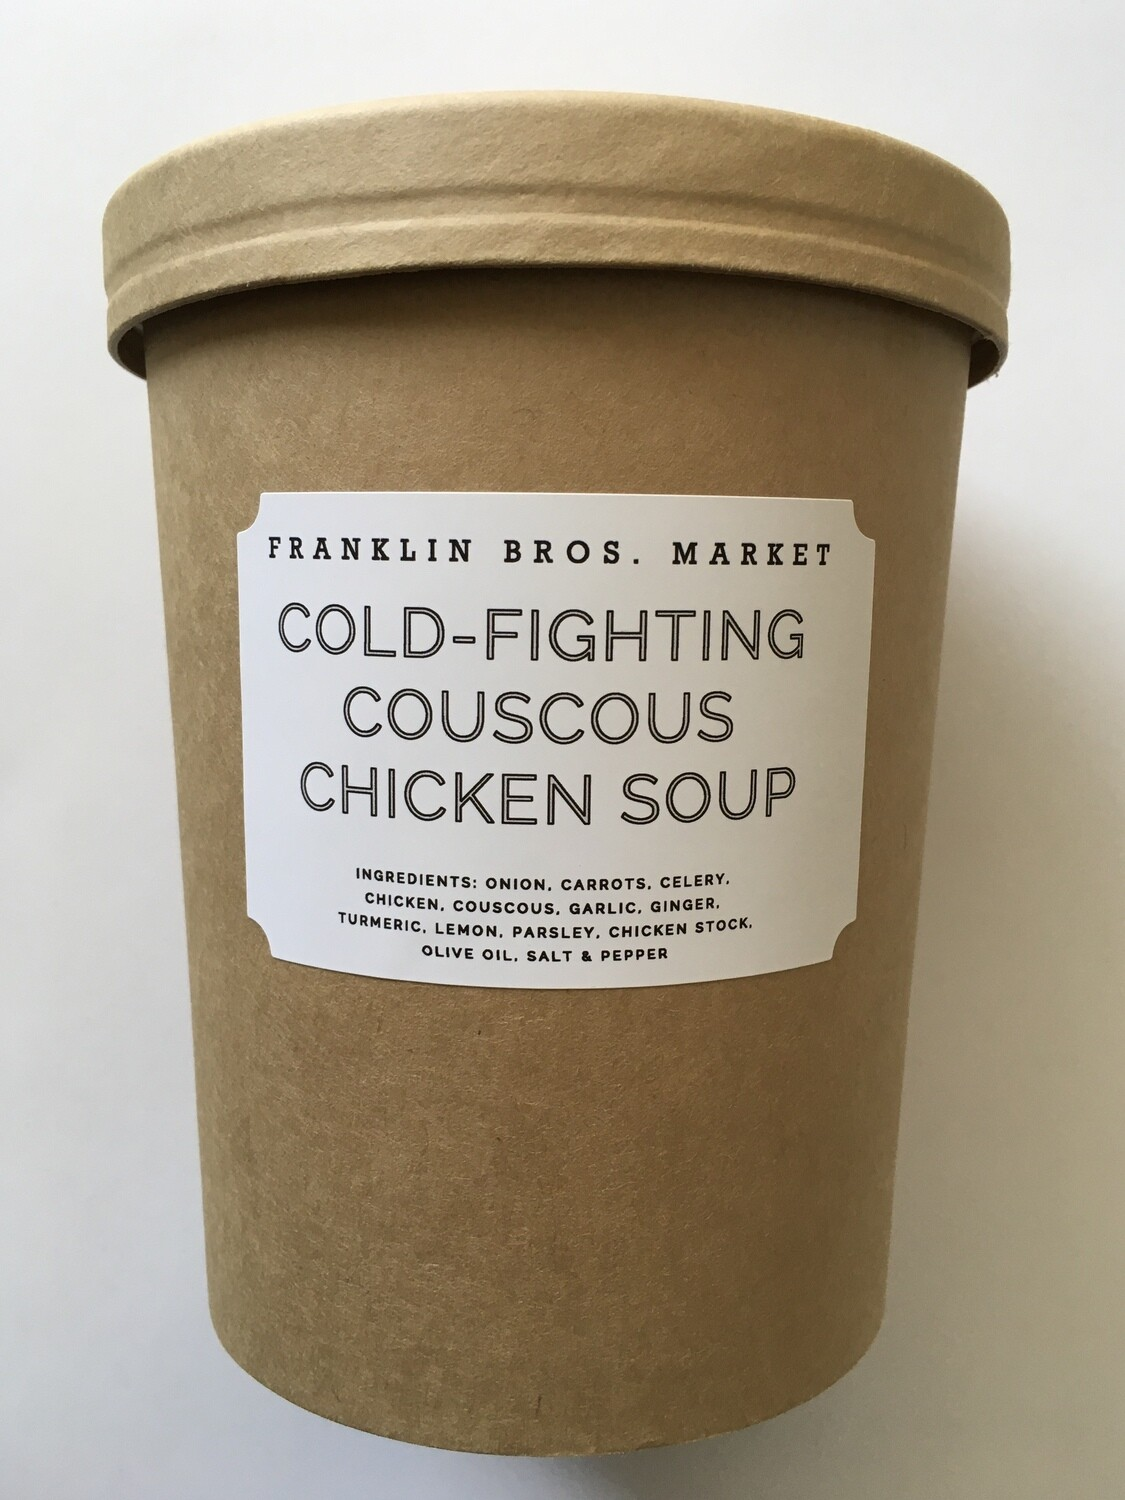 Frozen / Entree / Franklin Bros. Market Cold-Fighting Couscous Chicken Soup, 32 oz